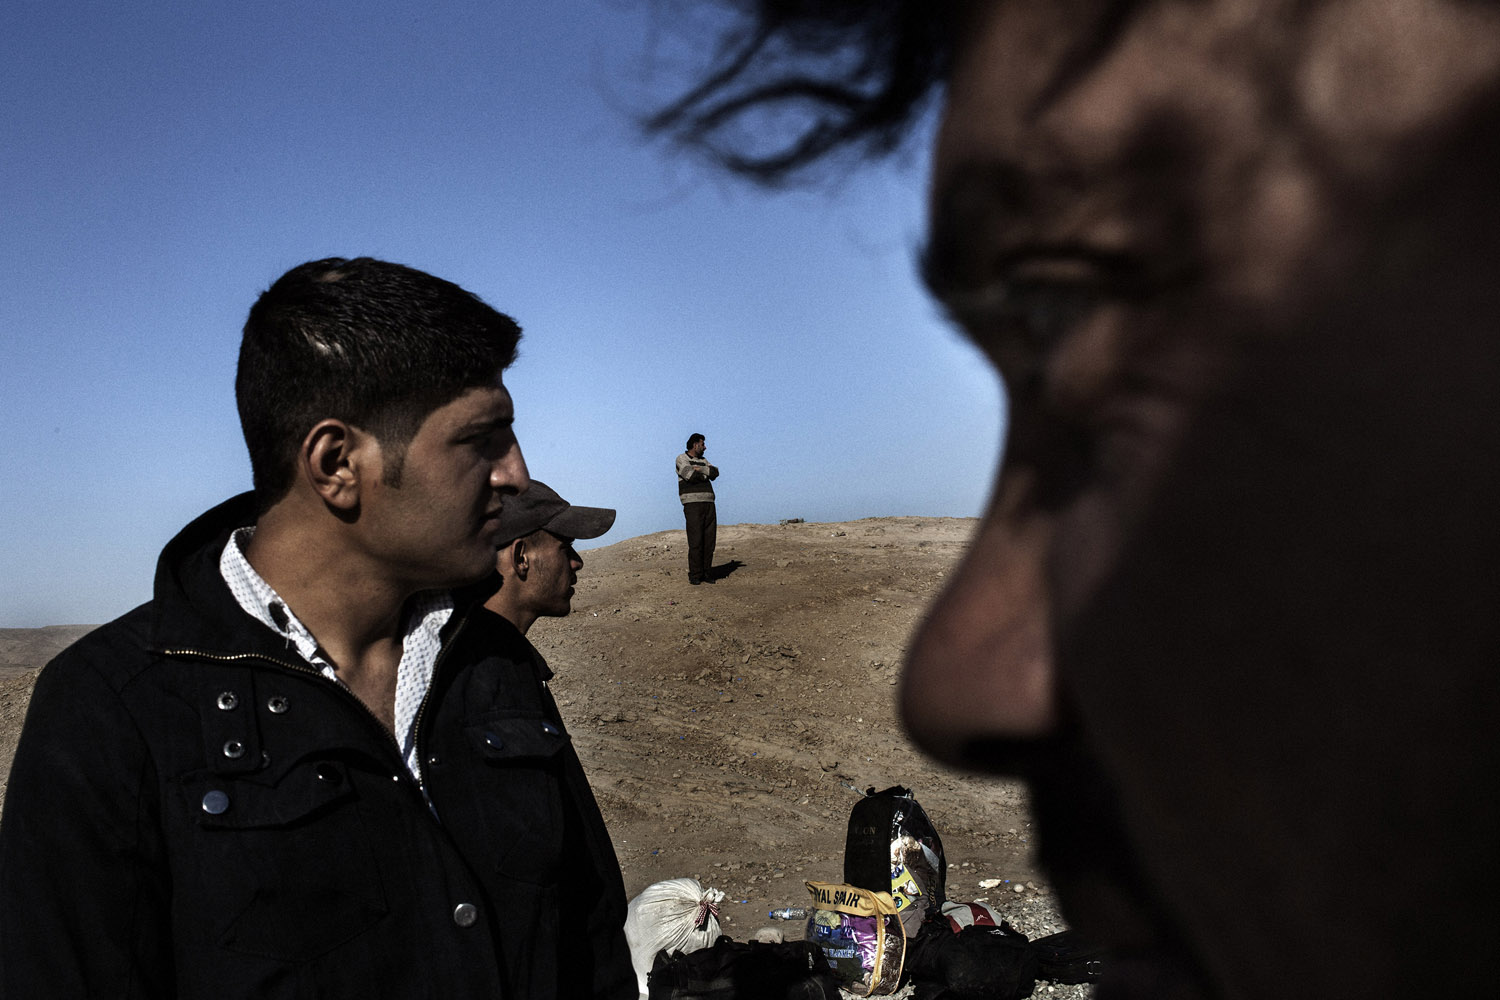 Syrian refugees stand near the Syrian side of the border with Iraq as they flee the war. Fighting between jihadis and Syrian-Kurdish forces helped drive the exodus of refugees.